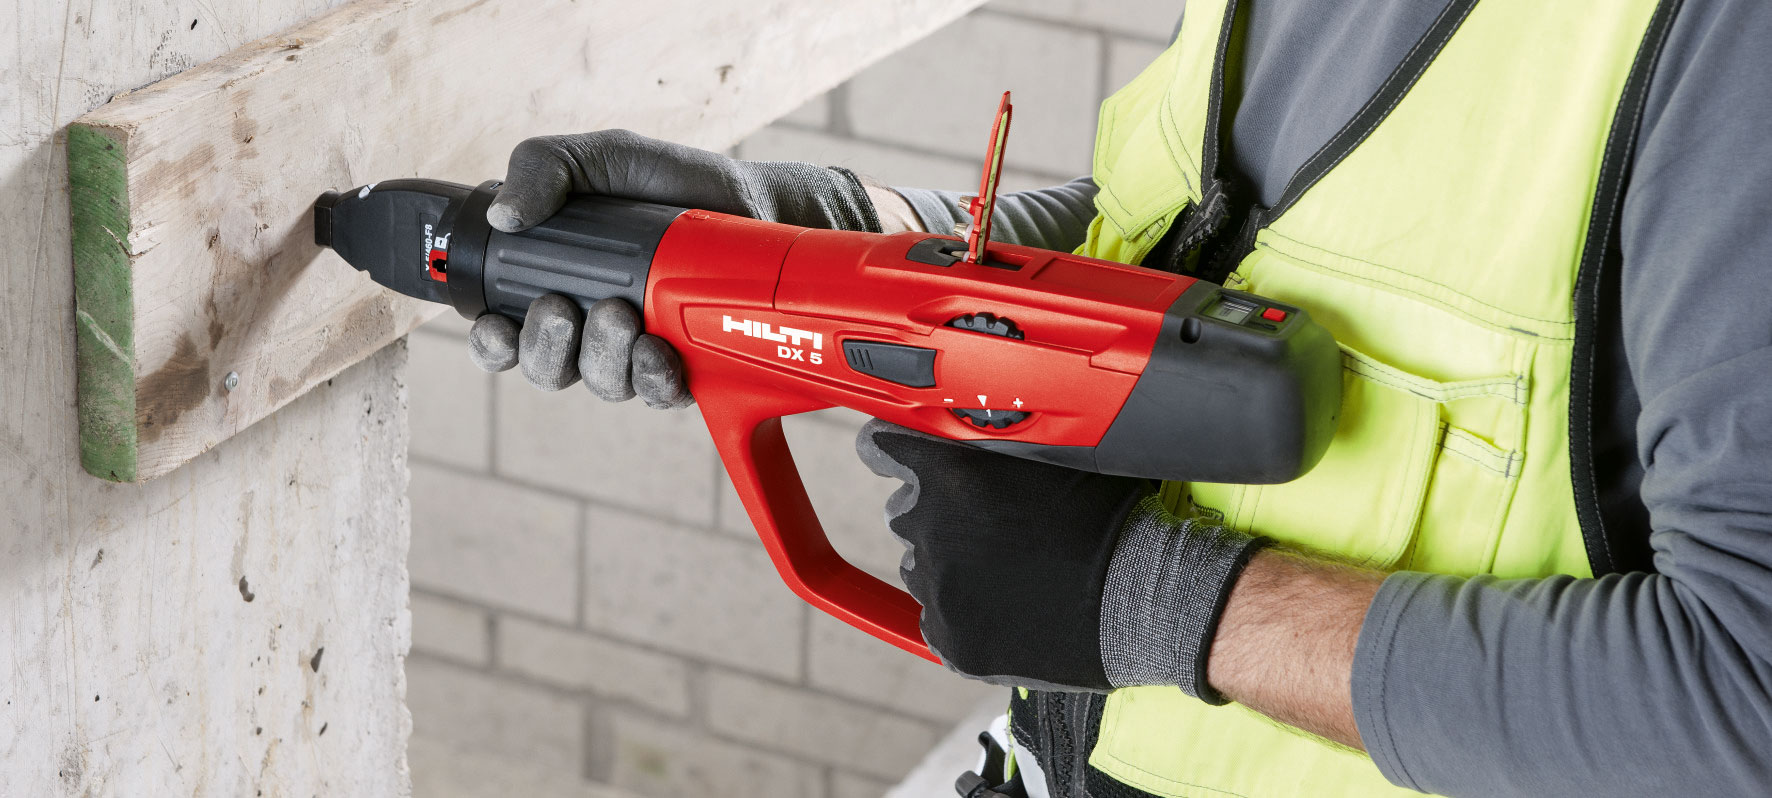 Hilti Direct fastening Tooln DX 5